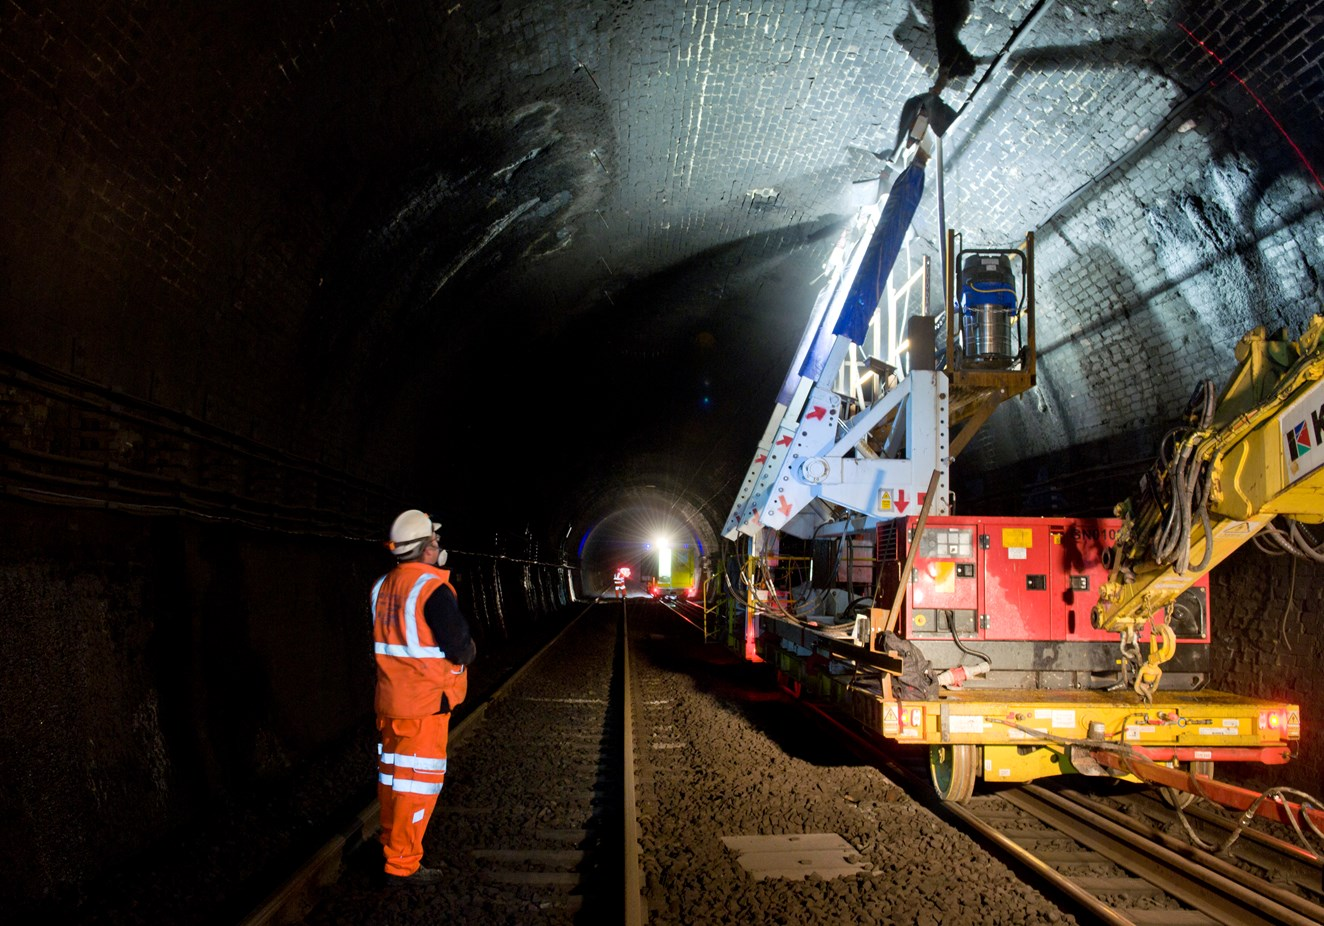 South Gloucestershire residents invited to find out more about railway electrification work in Severn and Patchway tunnels: Severn Tunnel Electrification Drilling Work 12